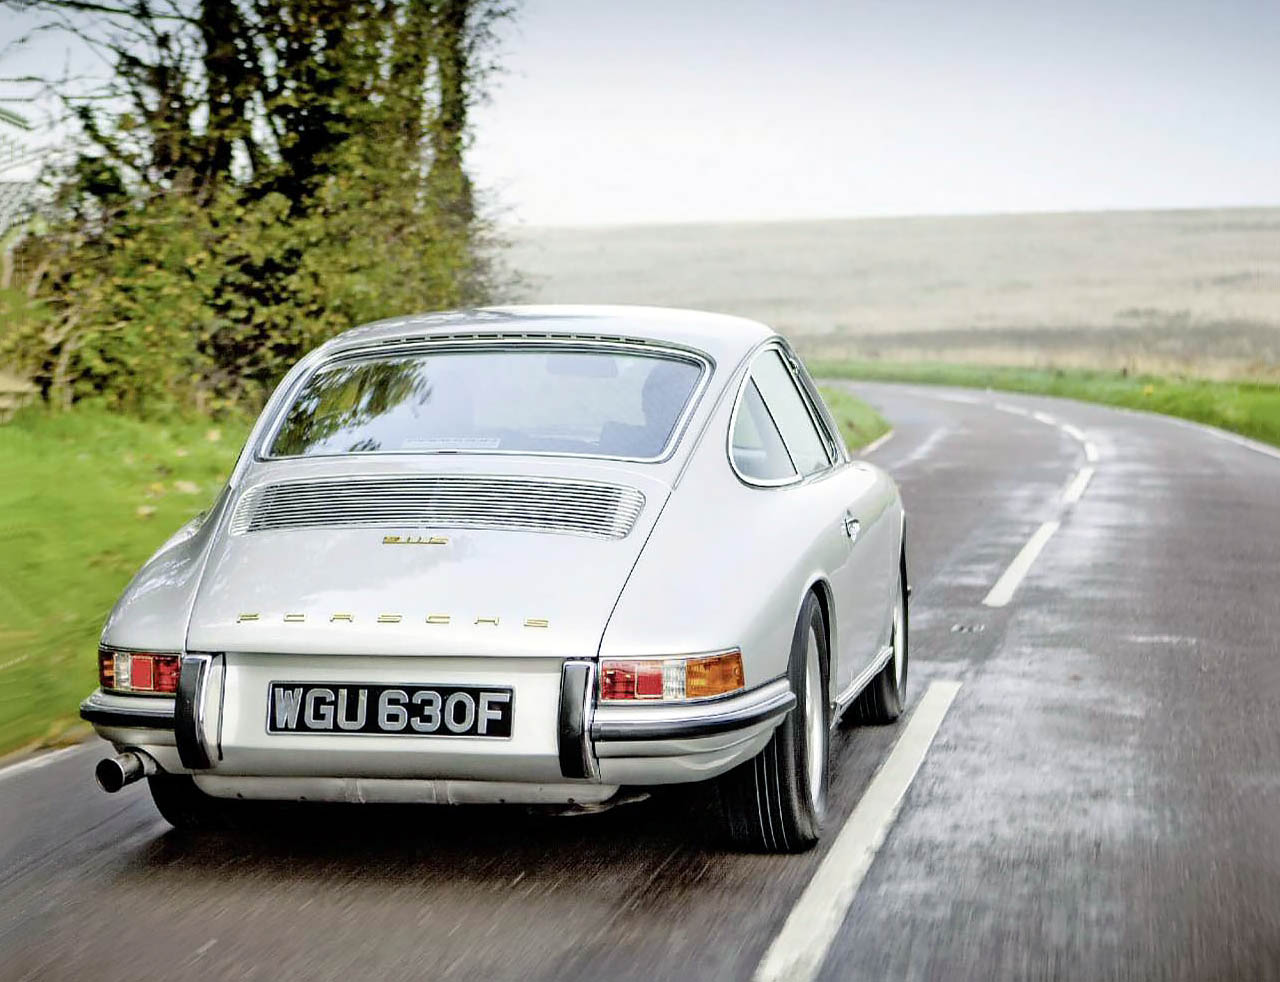 1968 Porsche 911 2.0S SWB road test